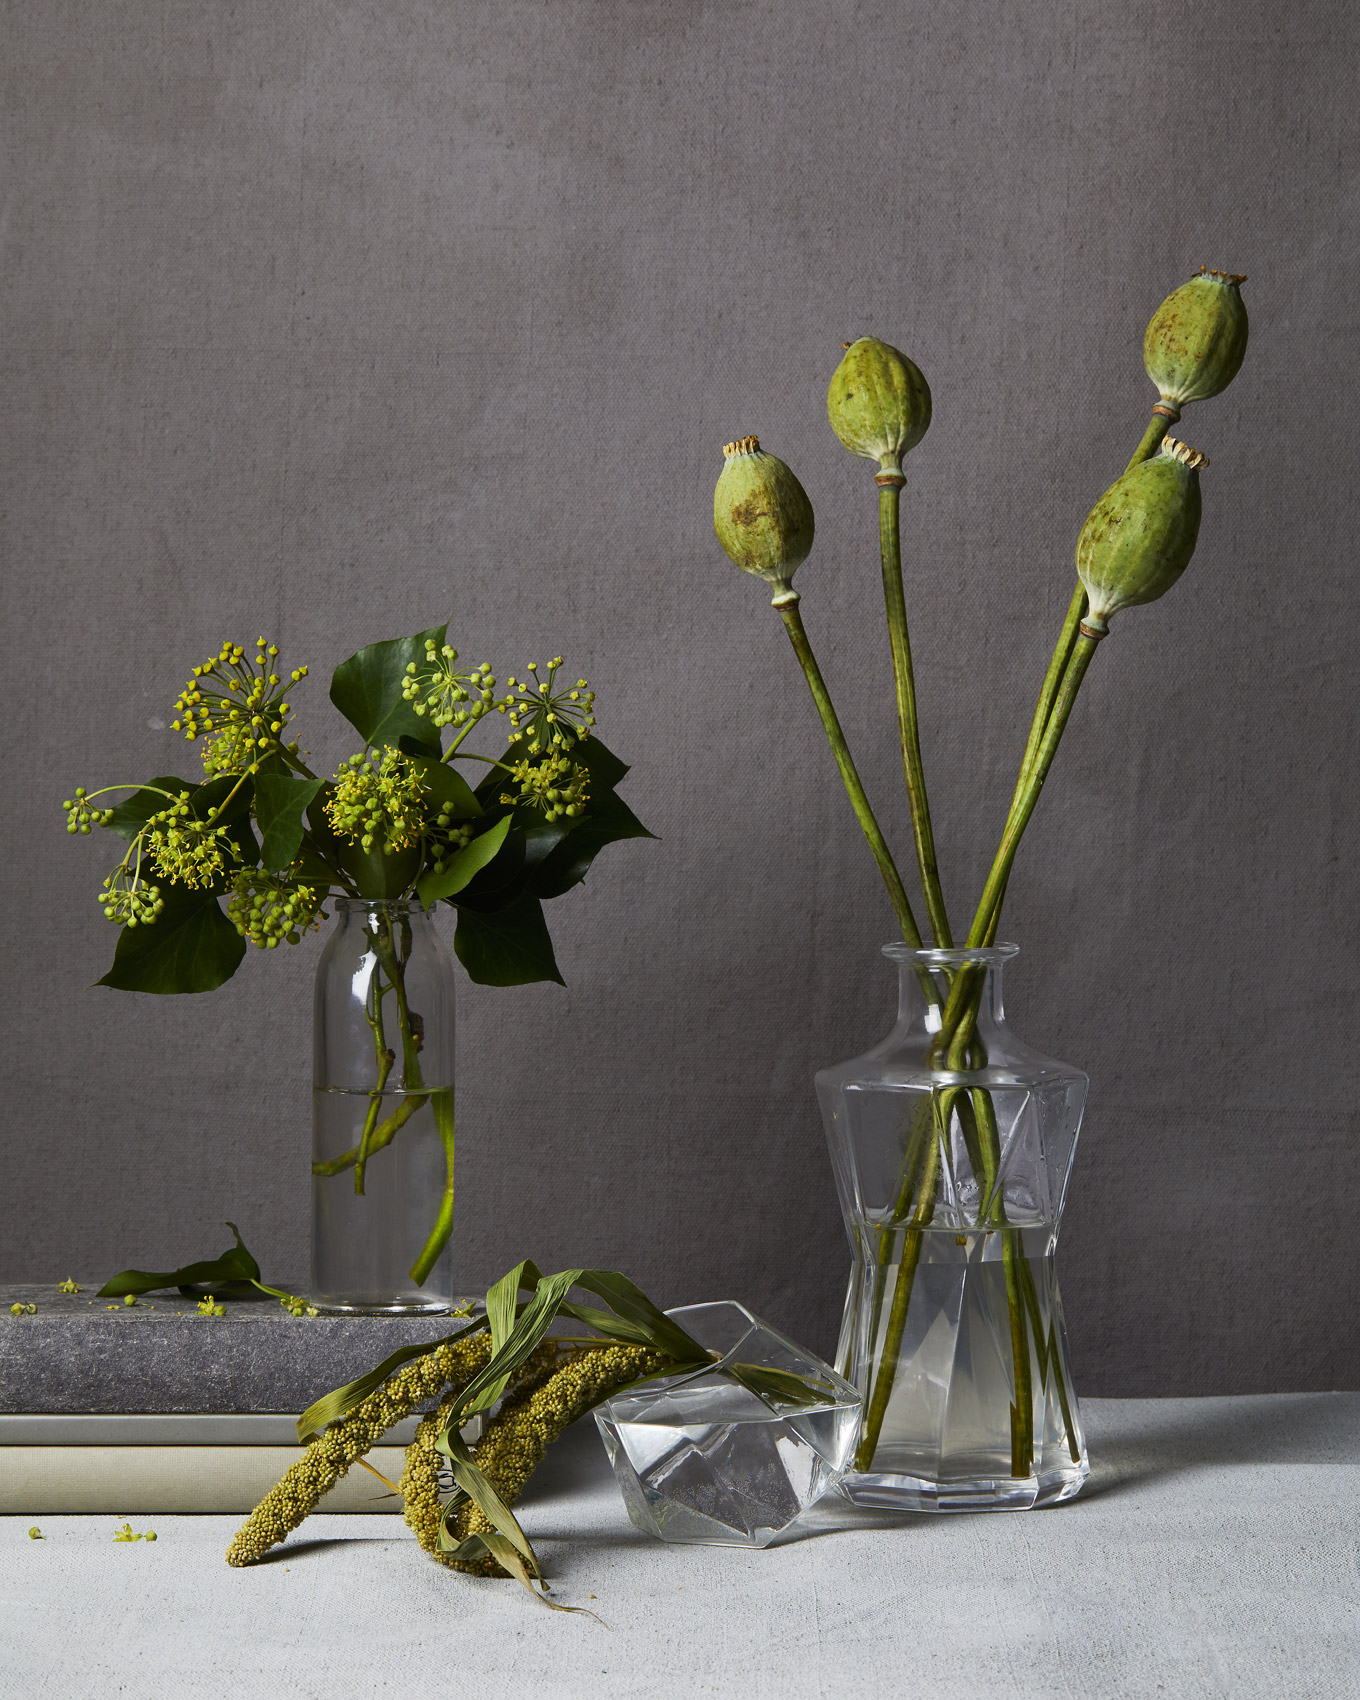 green-flowers_painted-gray-background_florals_ty-mecham_emily-harris